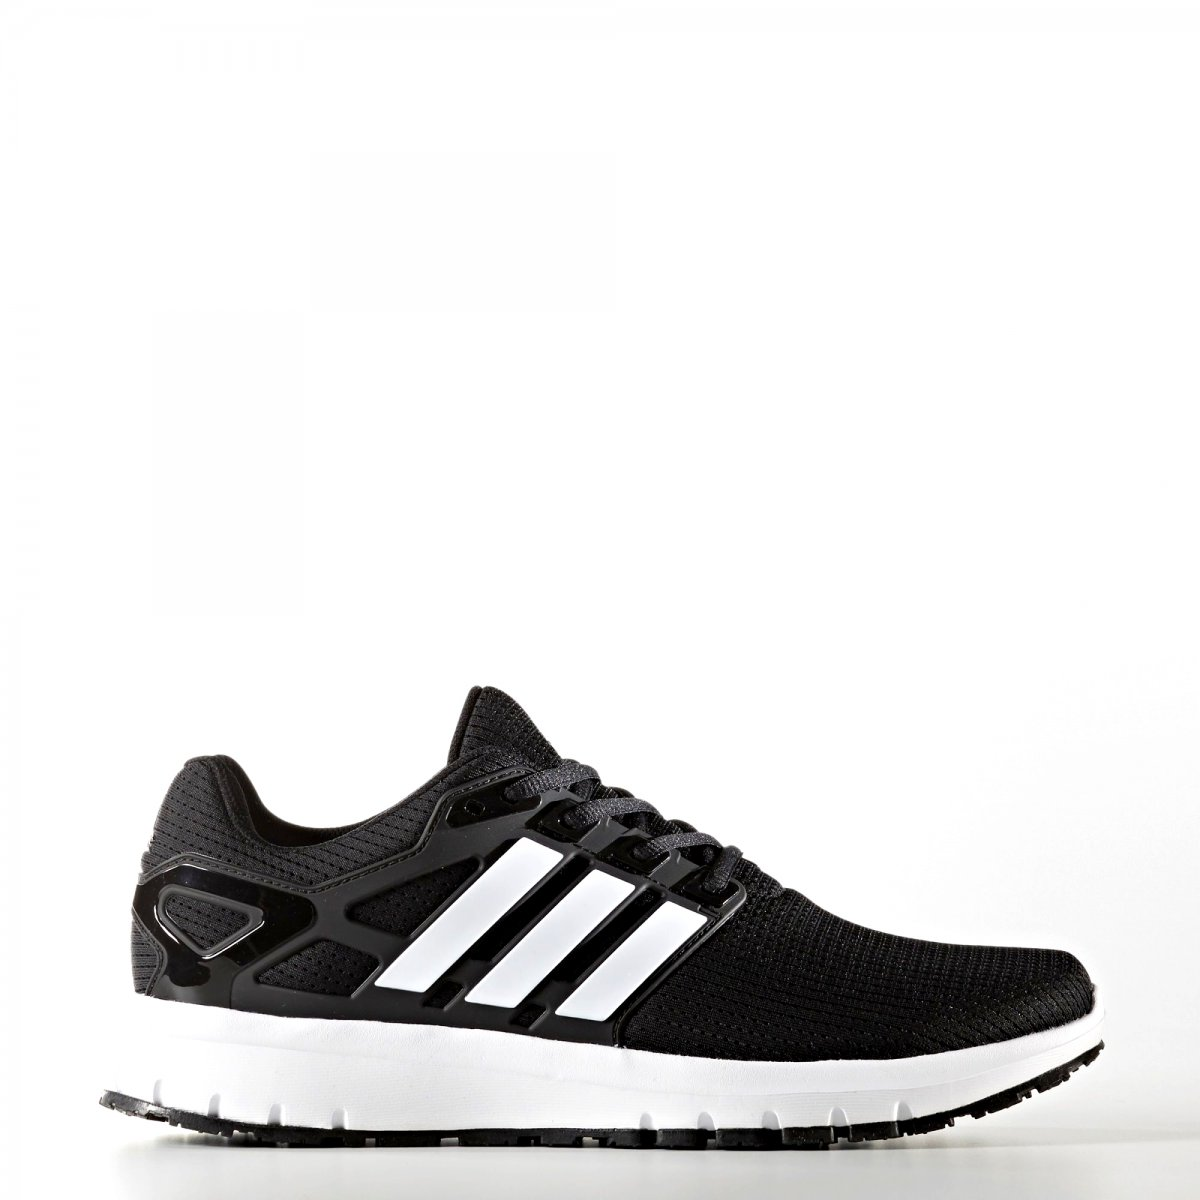 Tênis Masculino Adidas Energy Cloud Wtc BA8151 Preto Branco 88638cd3e8df8